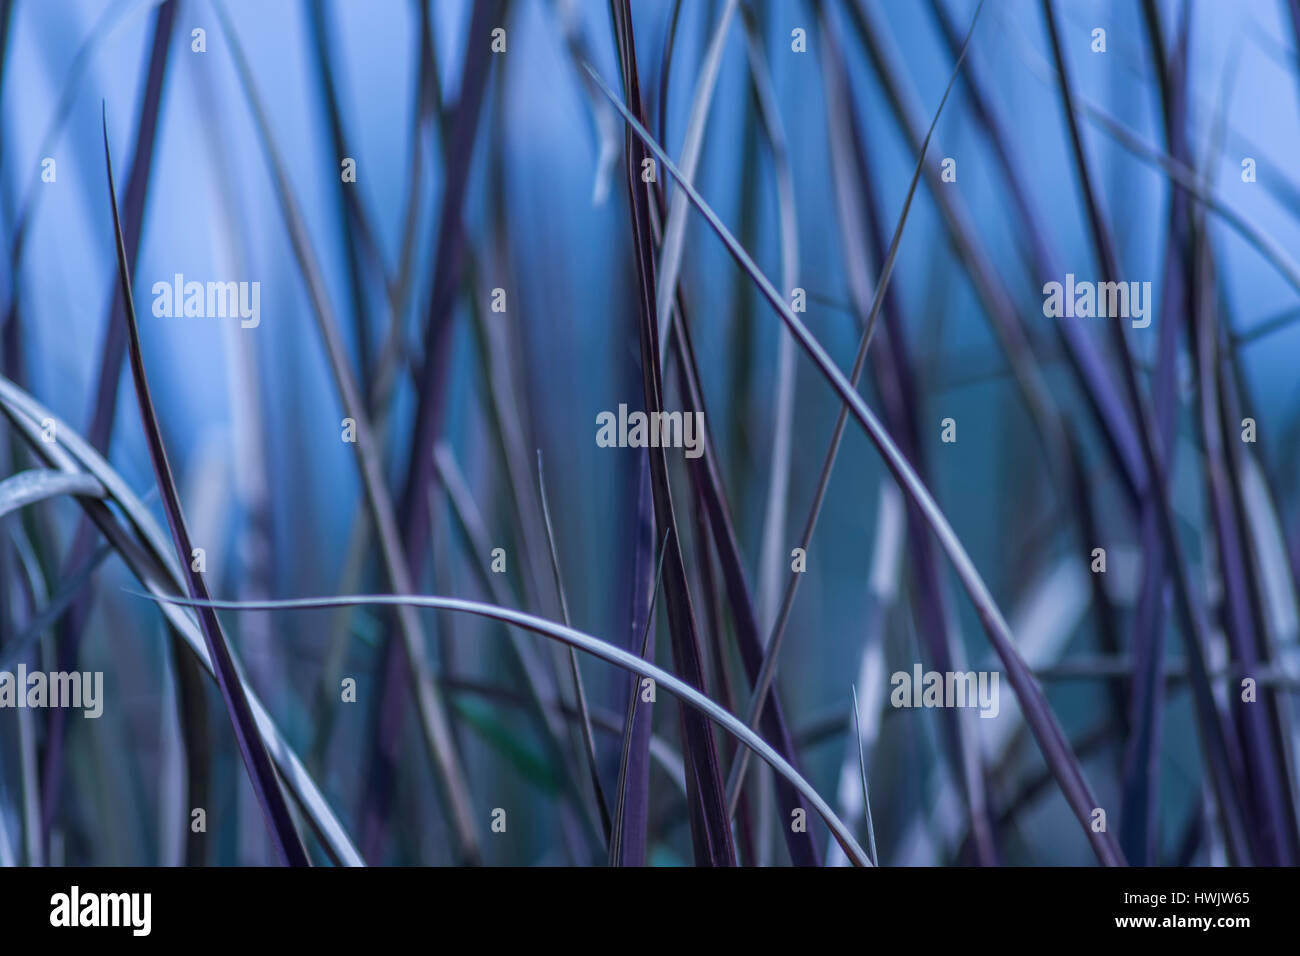 Wild grass abtract in blue shades. - Stock Image